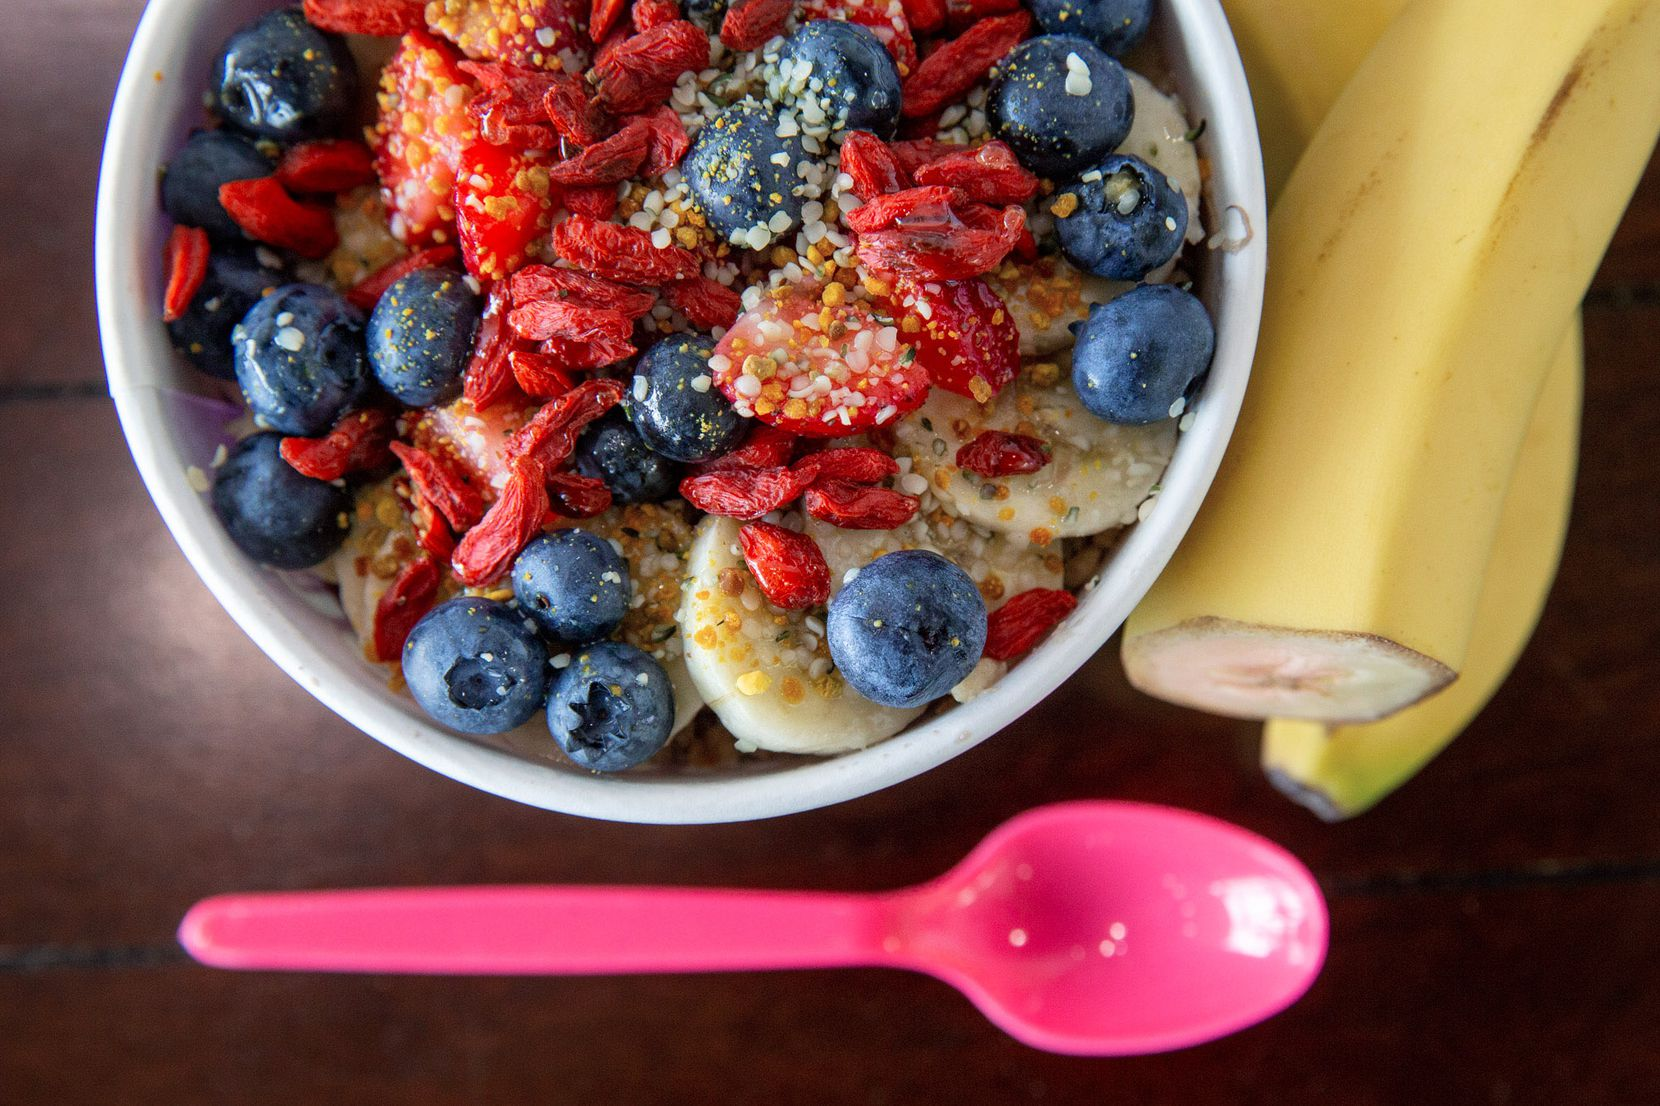 Bee pollen is commonly found on acai bowls and in smoothies.